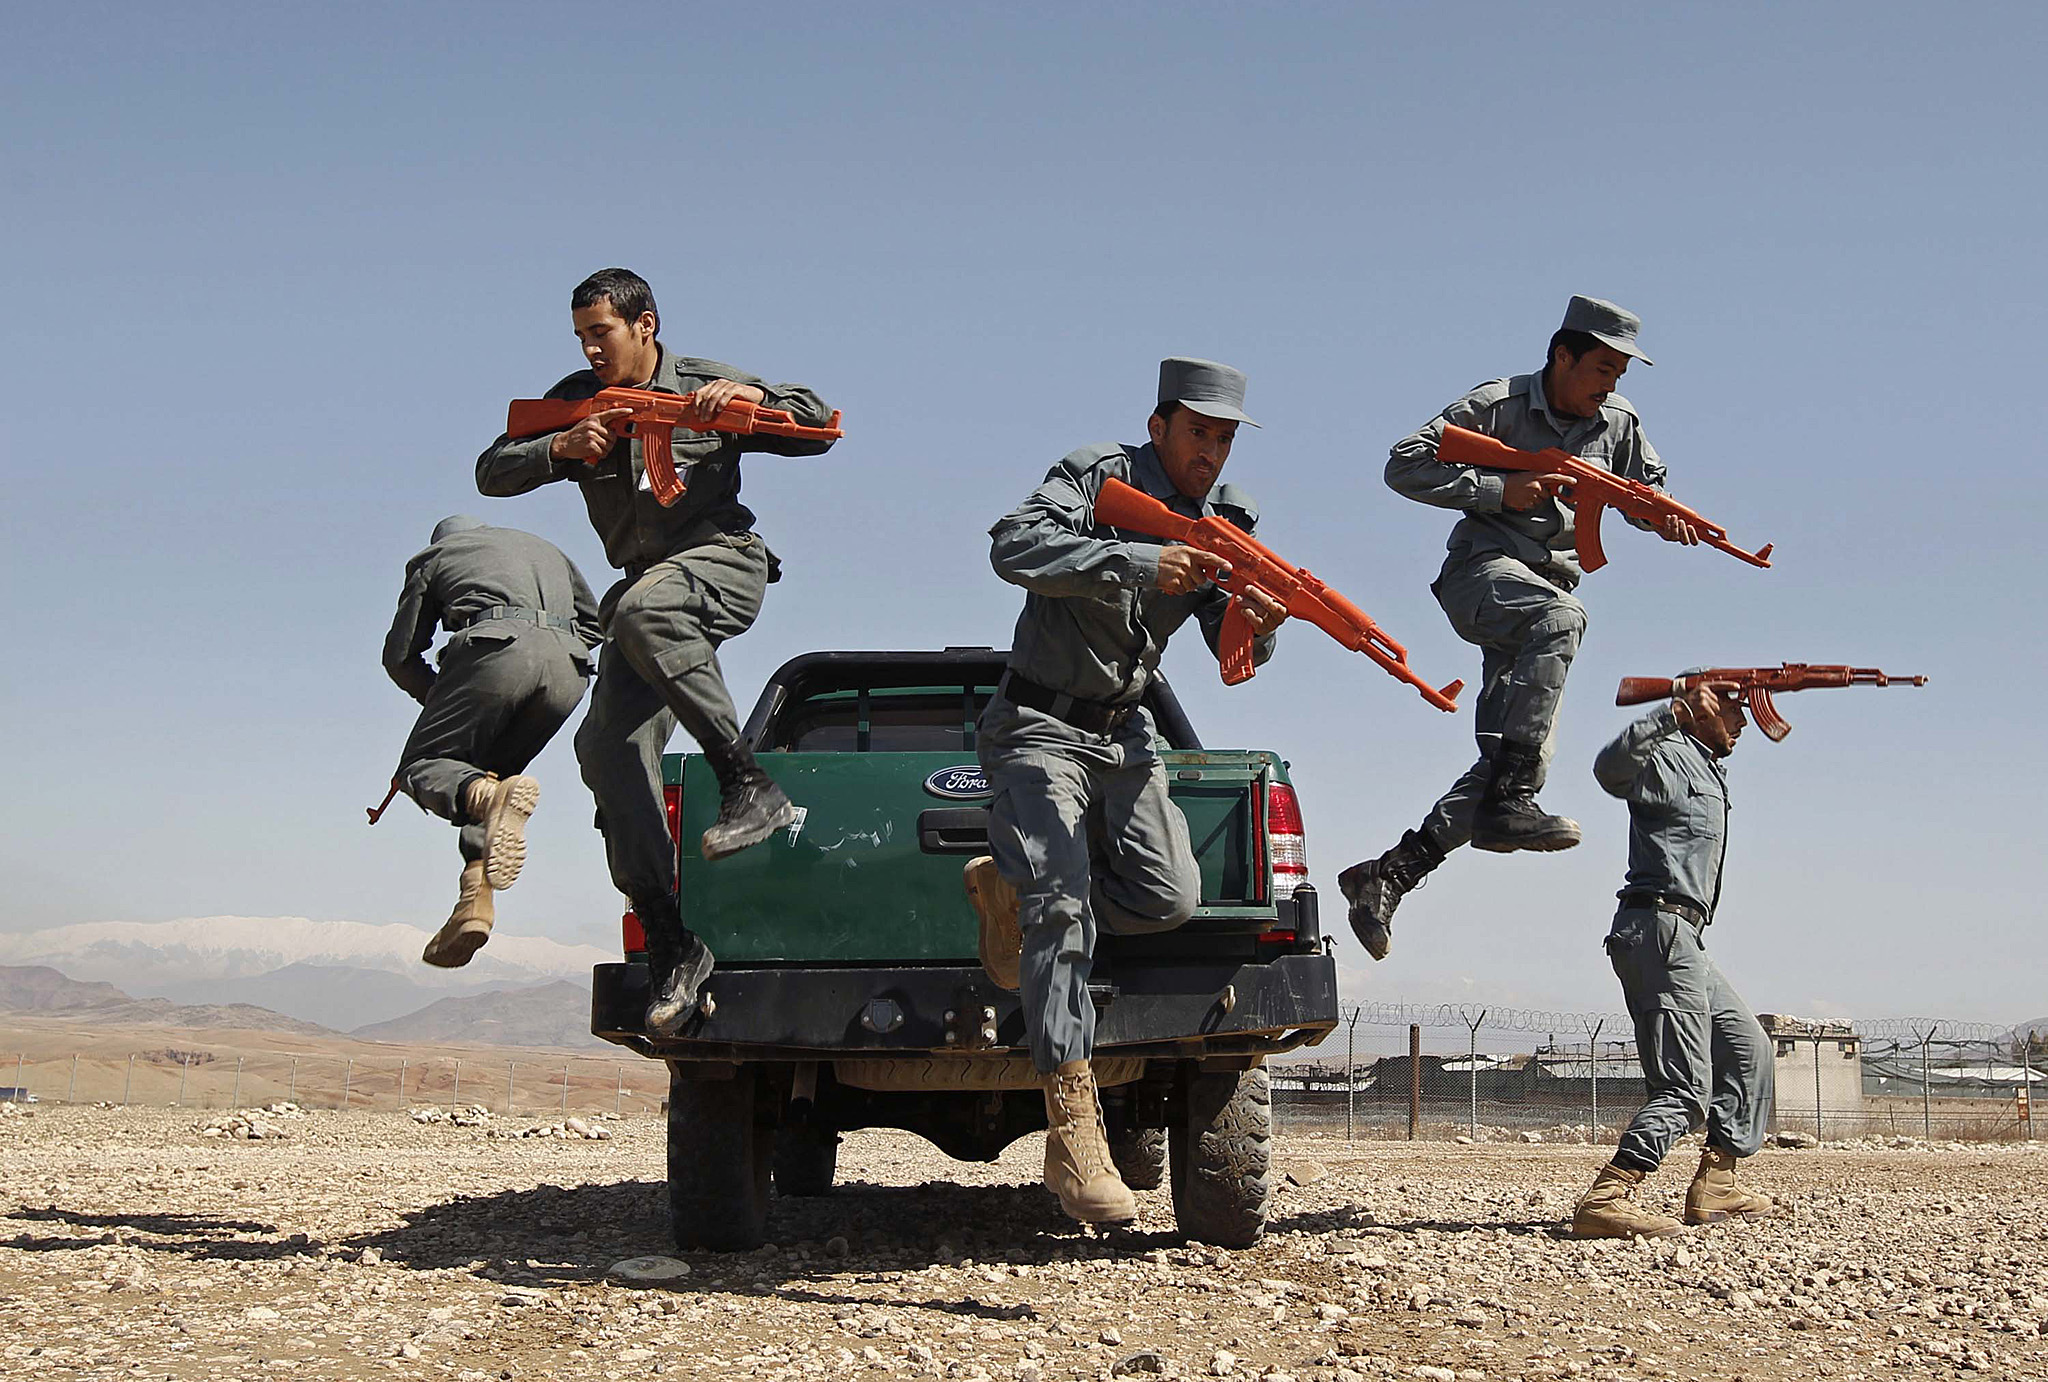 "REUTERS PICTURE HIGHLIGHT...ATTENTION EDITORS - REUTERS PICTURE HIGHLIGHT TRANSMITTED BY 1419 GMT ON MARCH 9, 2015    KAB01  Afghan policemen display their skills at a police training centre in Nangarhar Province March 9, 2015.   REUTERS/Parwiz     REUTERS NEWS PICTURES HAS NOW MADE IT EASIER TO FIND THE BEST PHOTOS FROM THE MOST IMPORTANT STORIES AND TOP STANDALONES EACH DAY. Search for ""TPX"" in the IPTC Supplemental Category field or ""IMAGES OF THE DAY"" in the Caption field and you will find a selection of 80-100 of our daily Top Pictures.    REUTERS NEWS PICTURES.     TEMPLATE OUT"